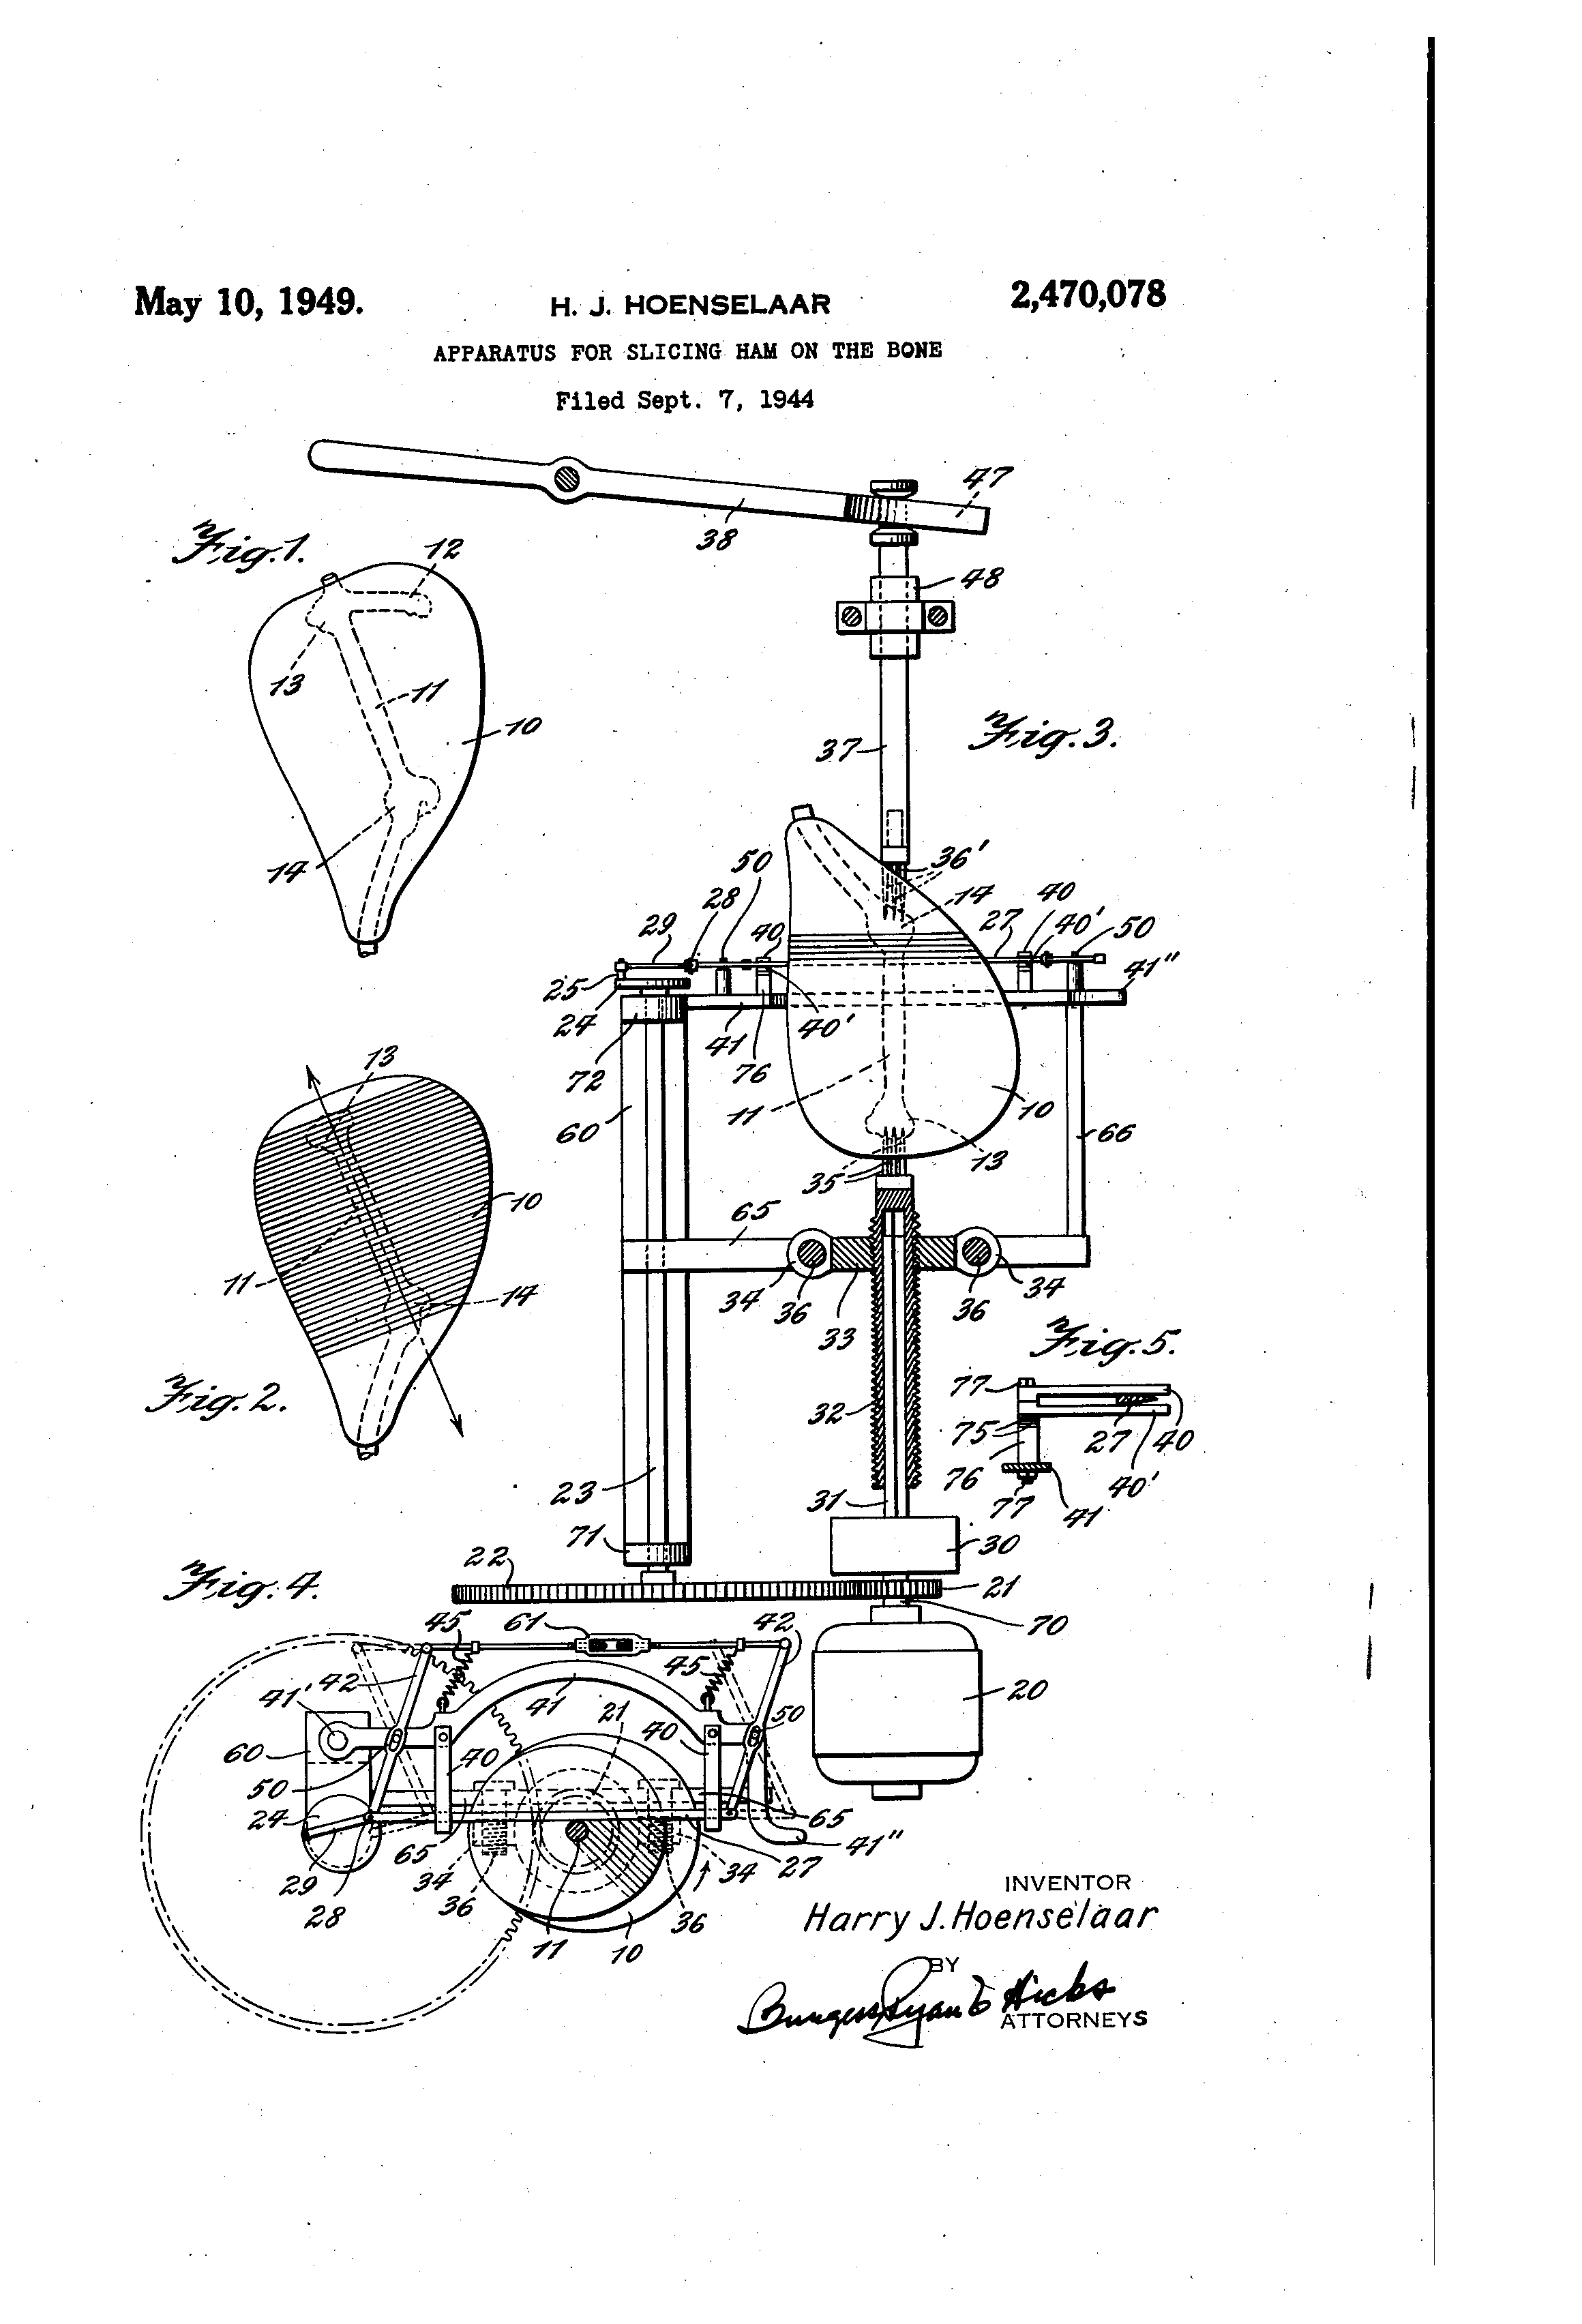 "Patent drawing for ""a device to slice ham on the bone"" by Harry Hoenselaar."